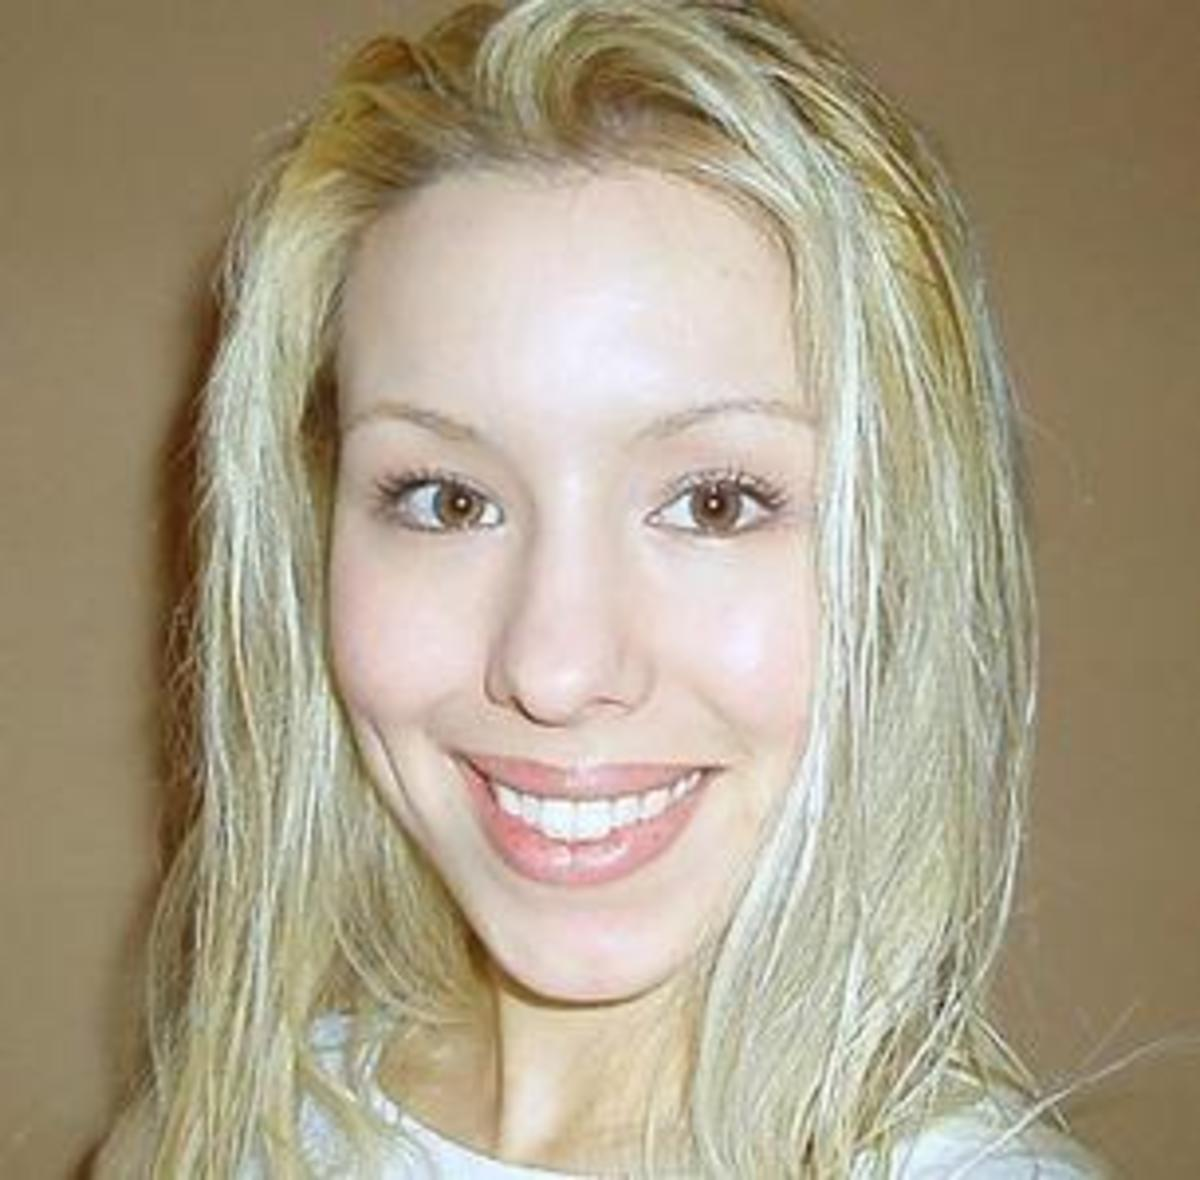 The Truth About Jodi Arias and Travis Alexander